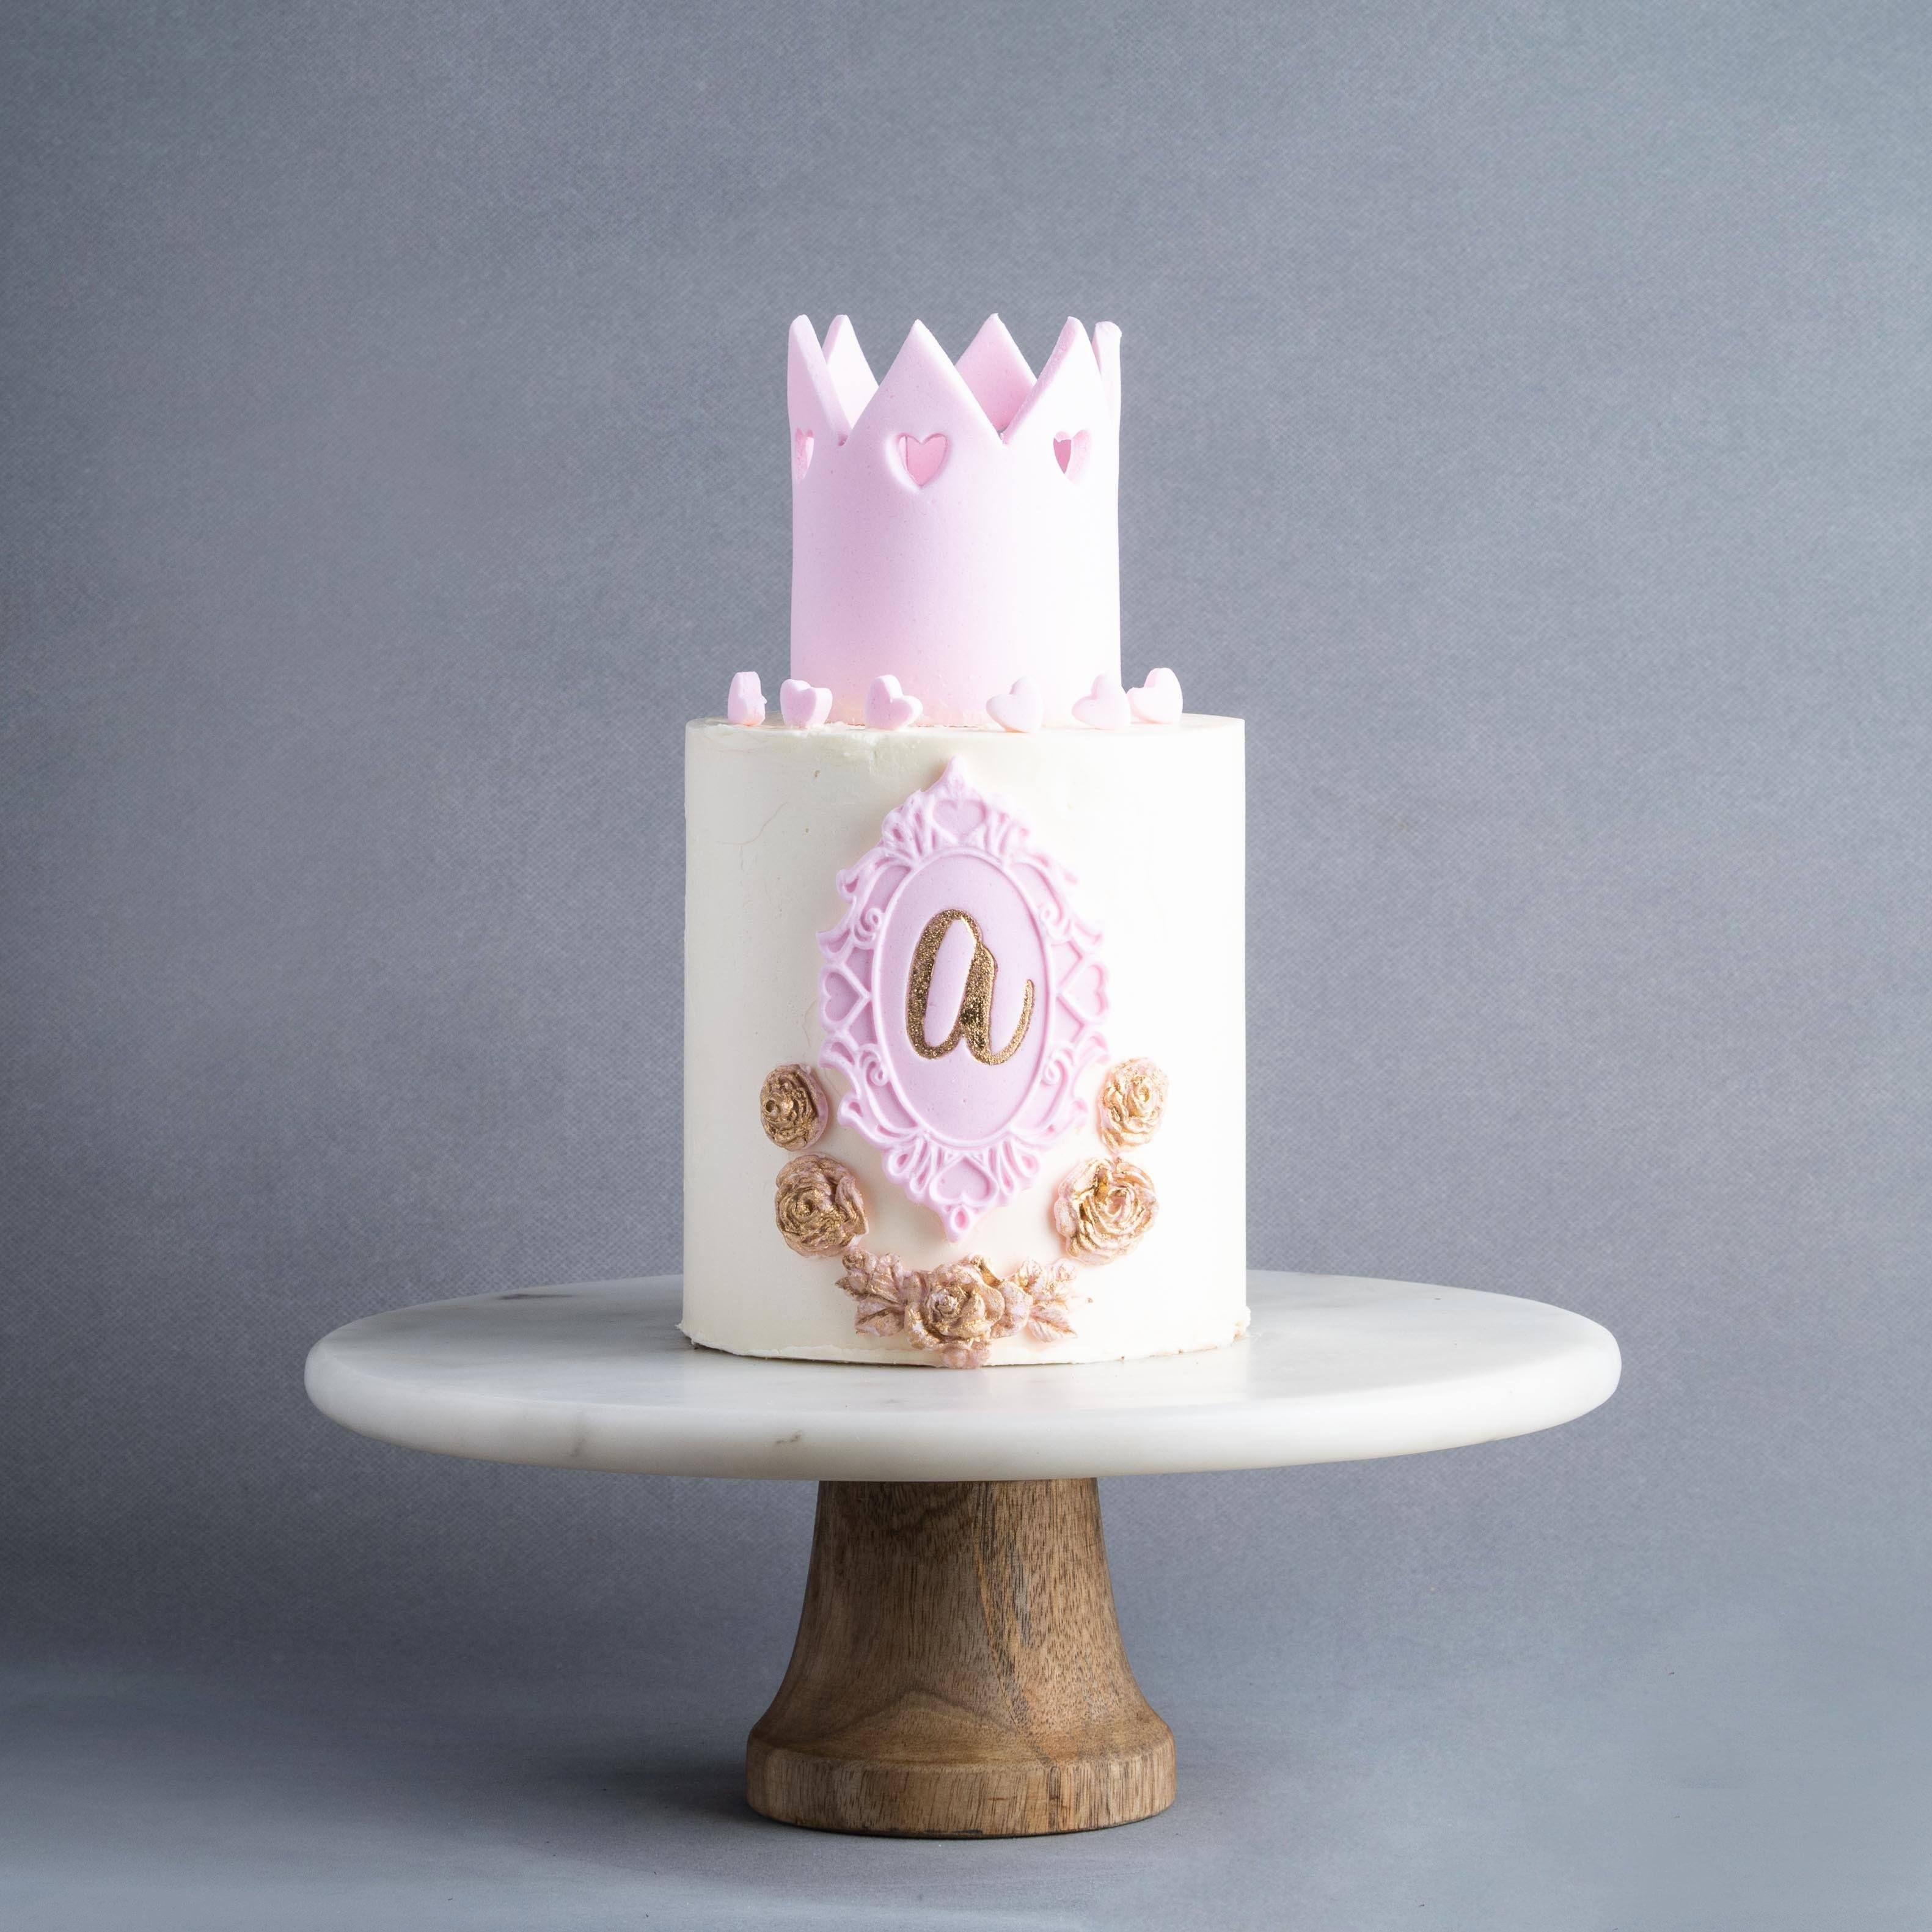 Crown cake 5 crown cake different cakes cake